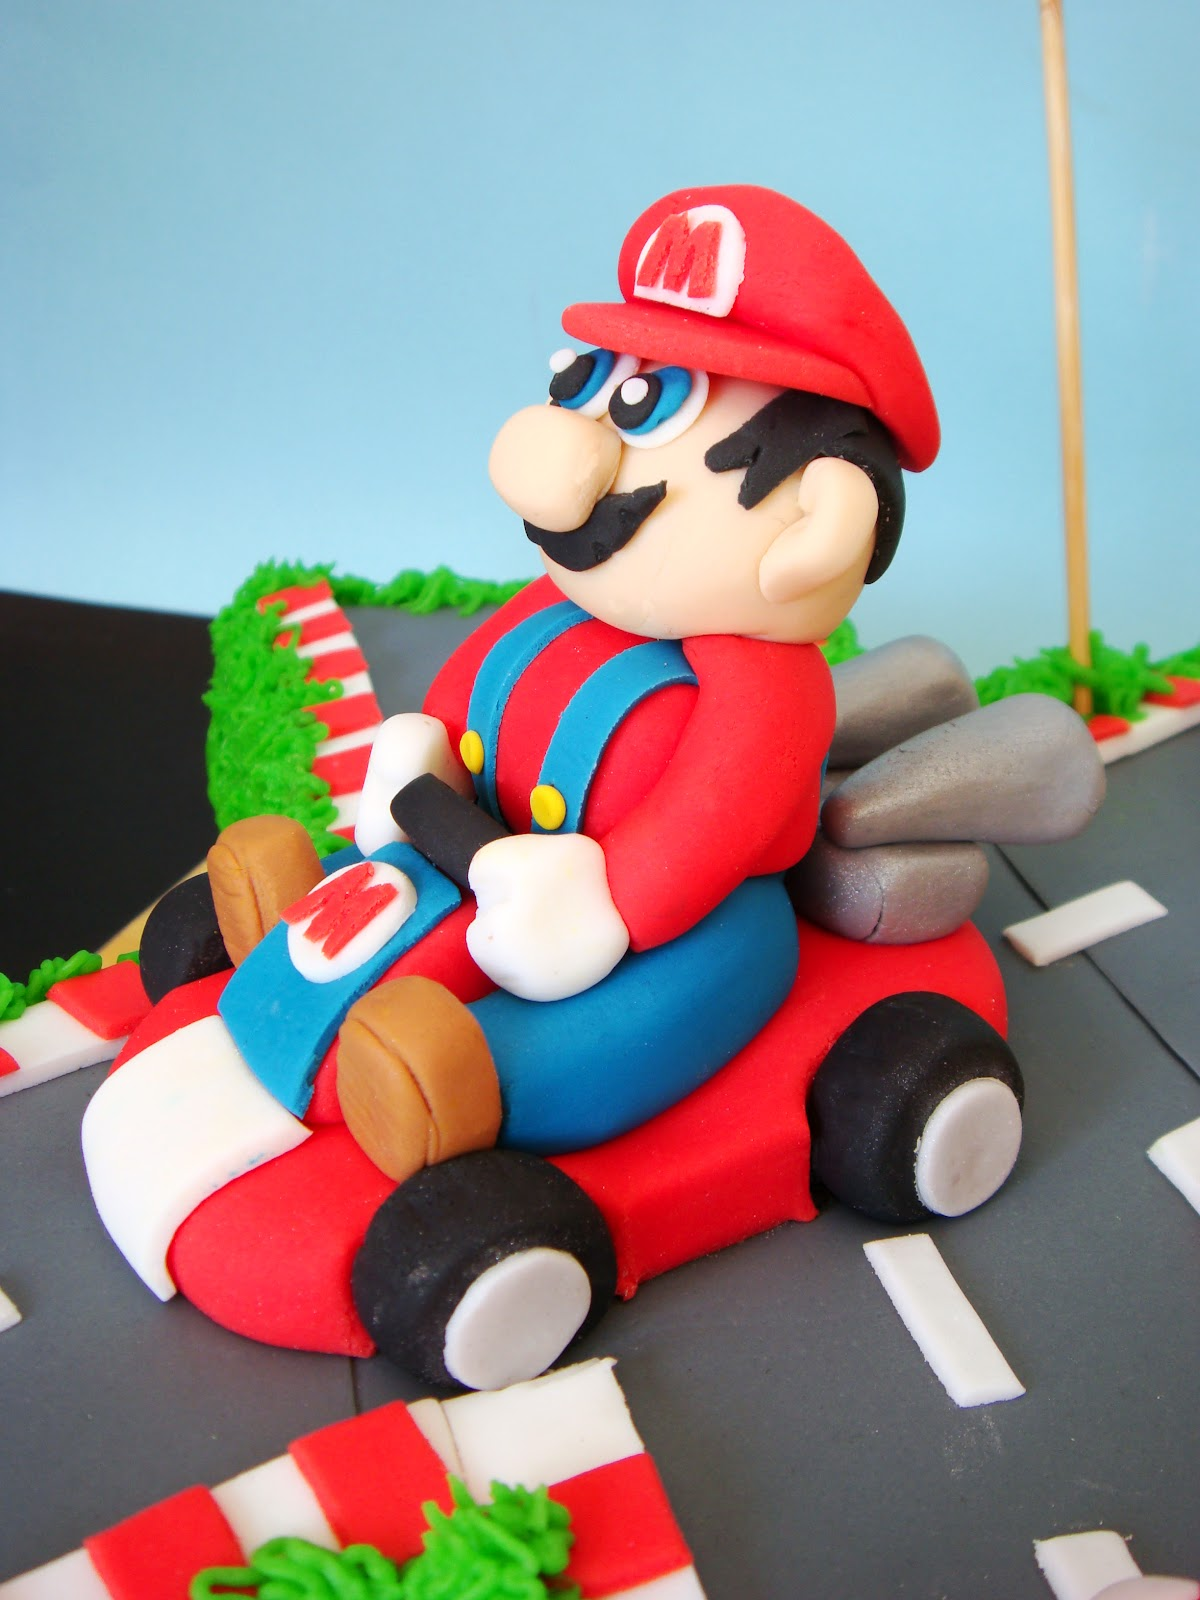 Butter Hearts Sugar Mario Kart Birthday Cake